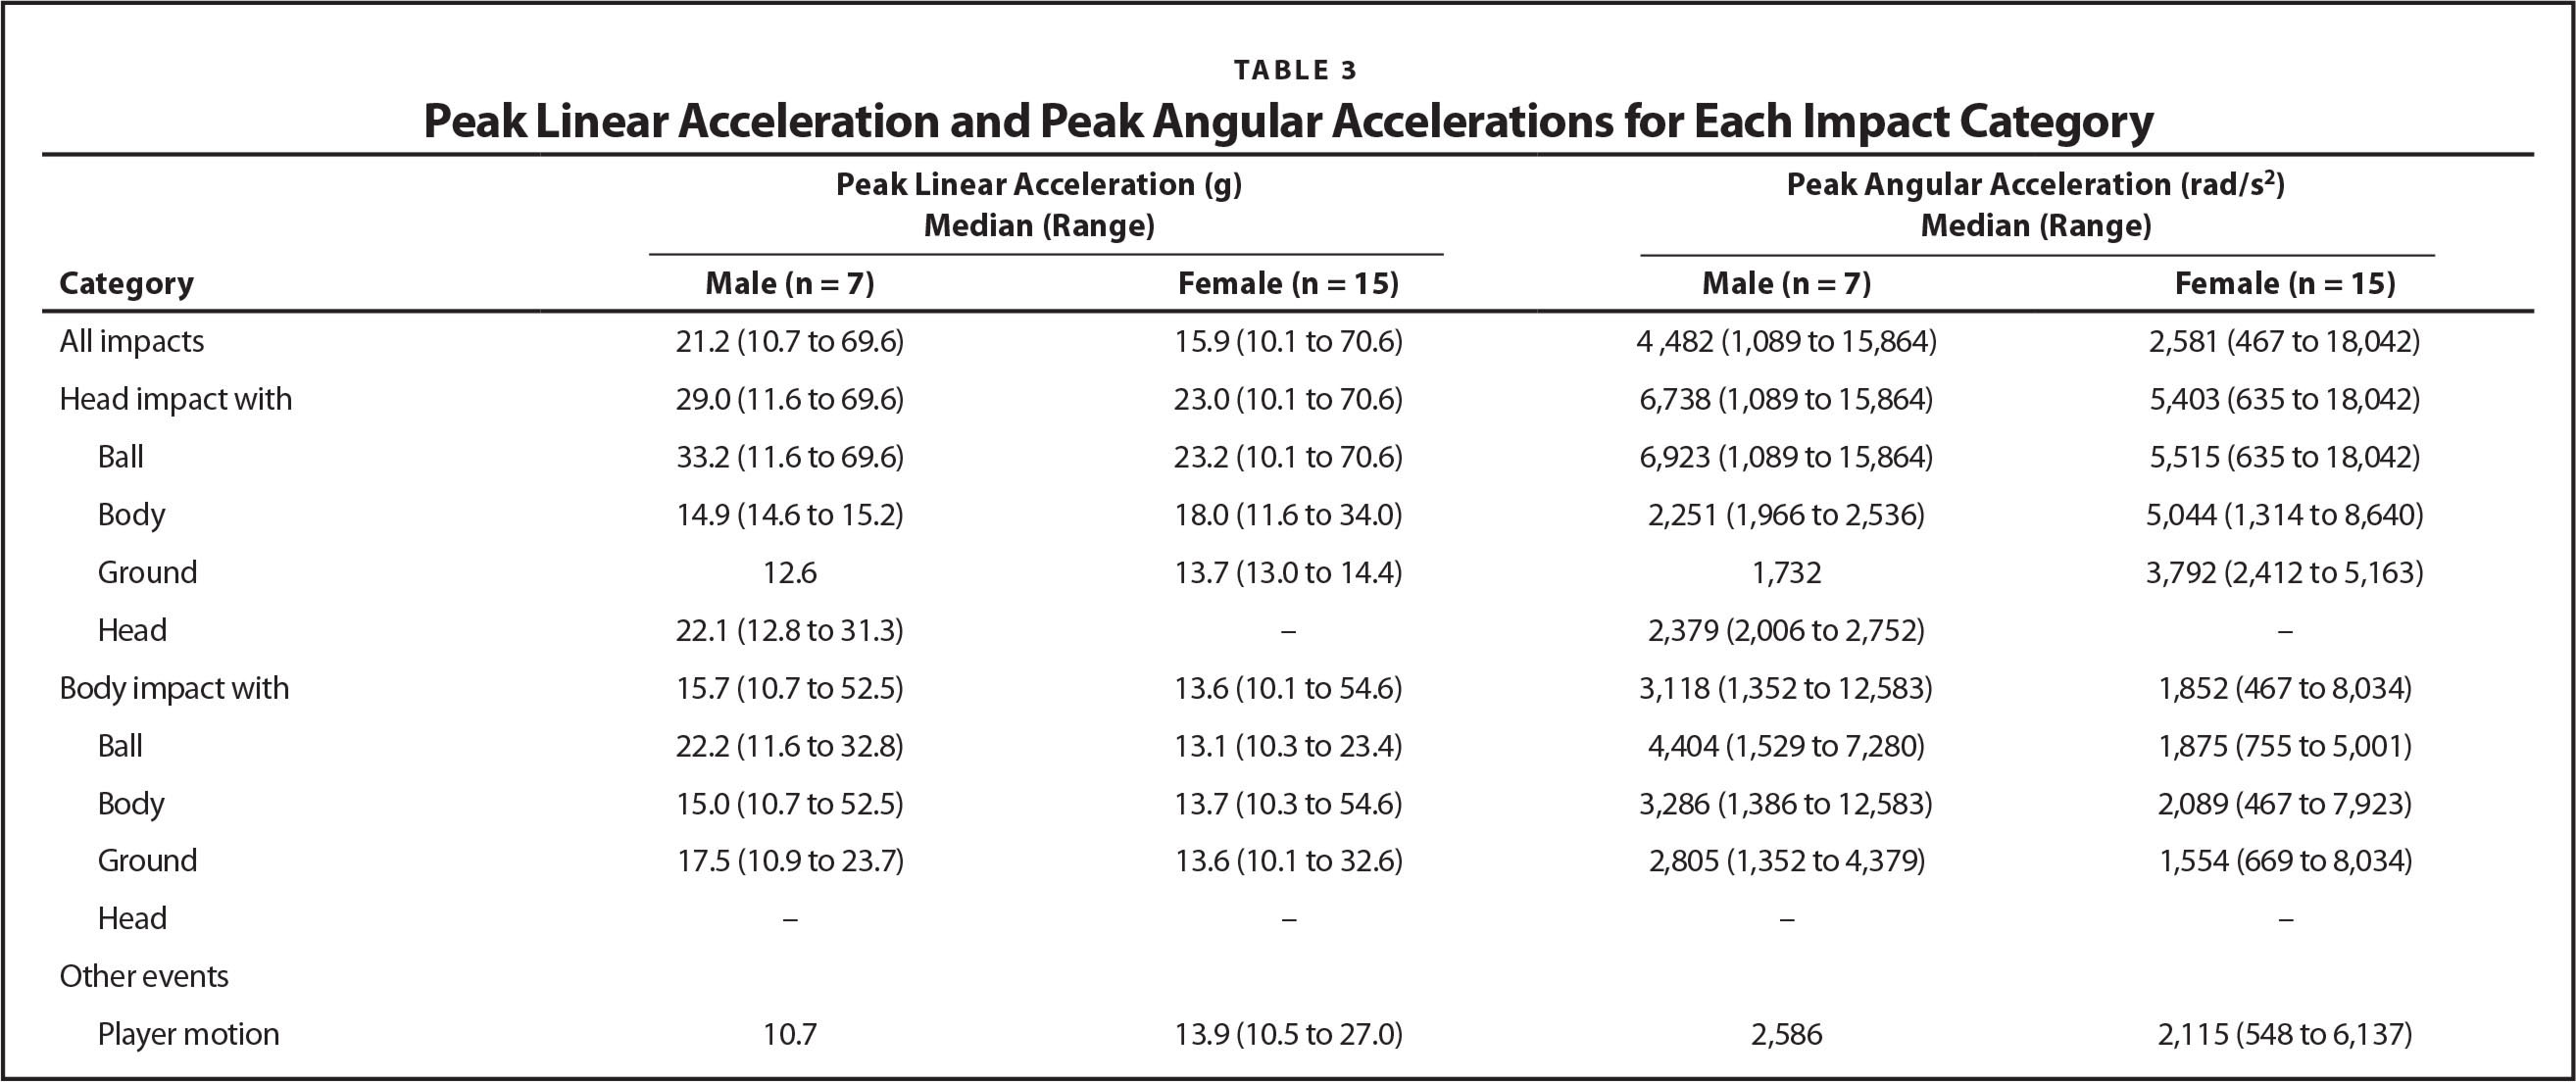 Peak Linear Acceleration and Peak Angular Accelerations for Each Impact Category